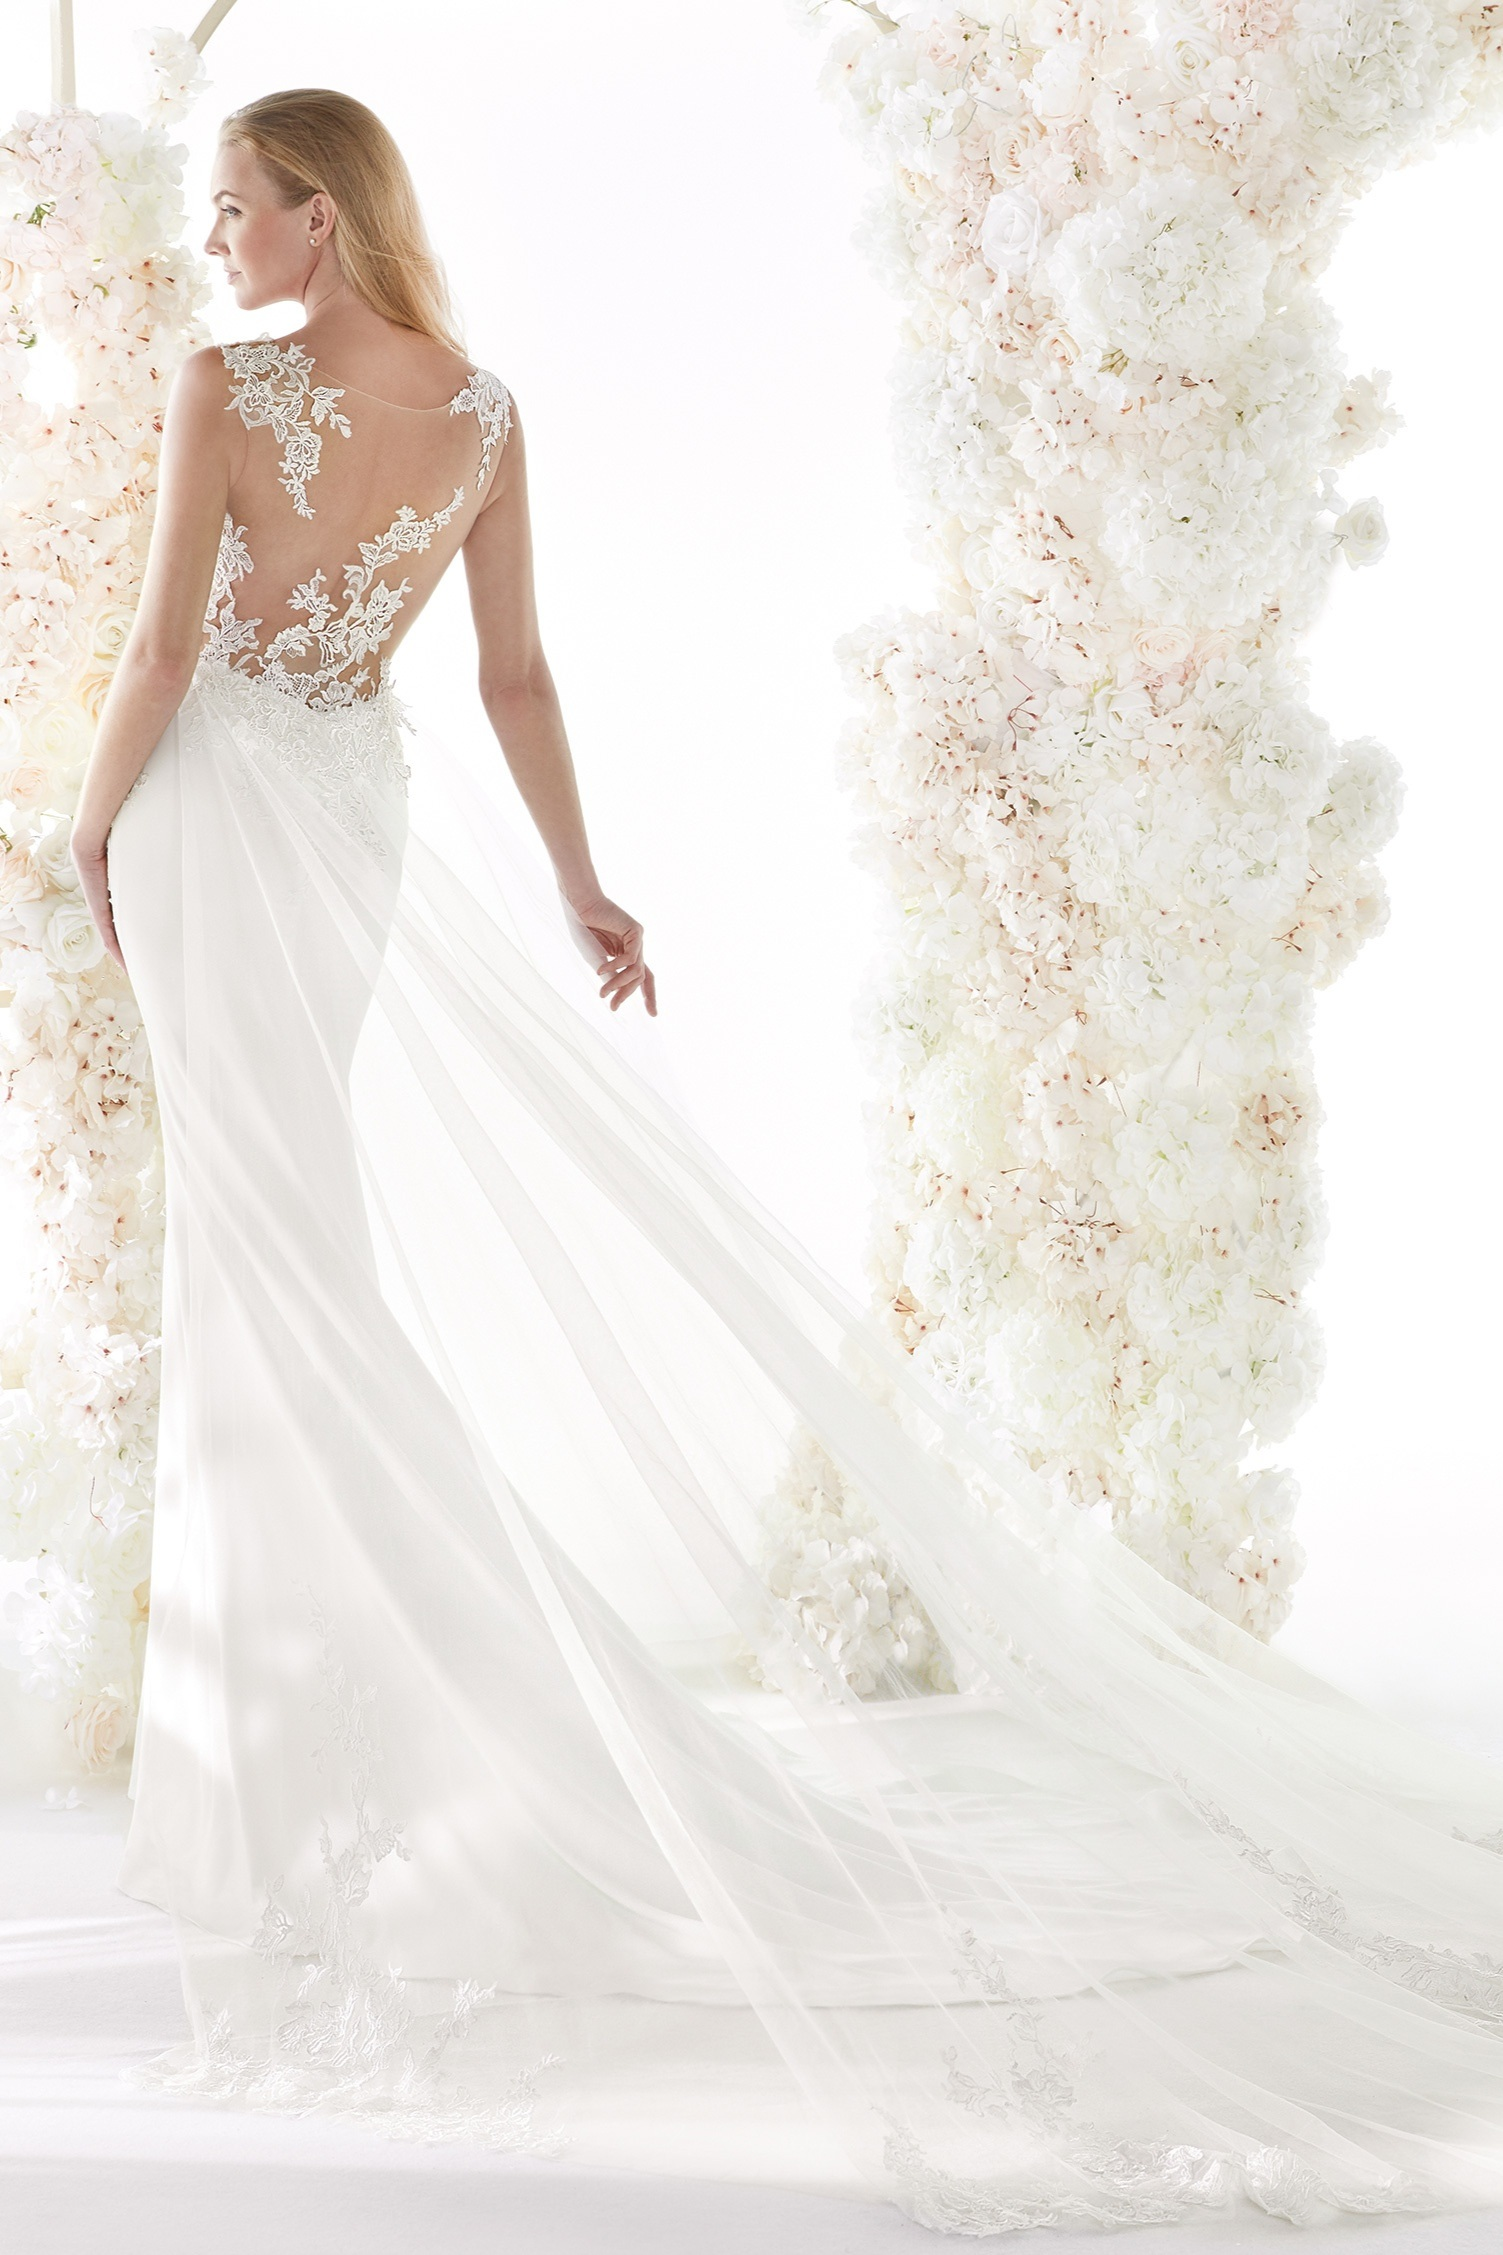 Colet by Nicole Spose Wedding Dresses | Sexy Illusion Back Crepe Wedding Dress